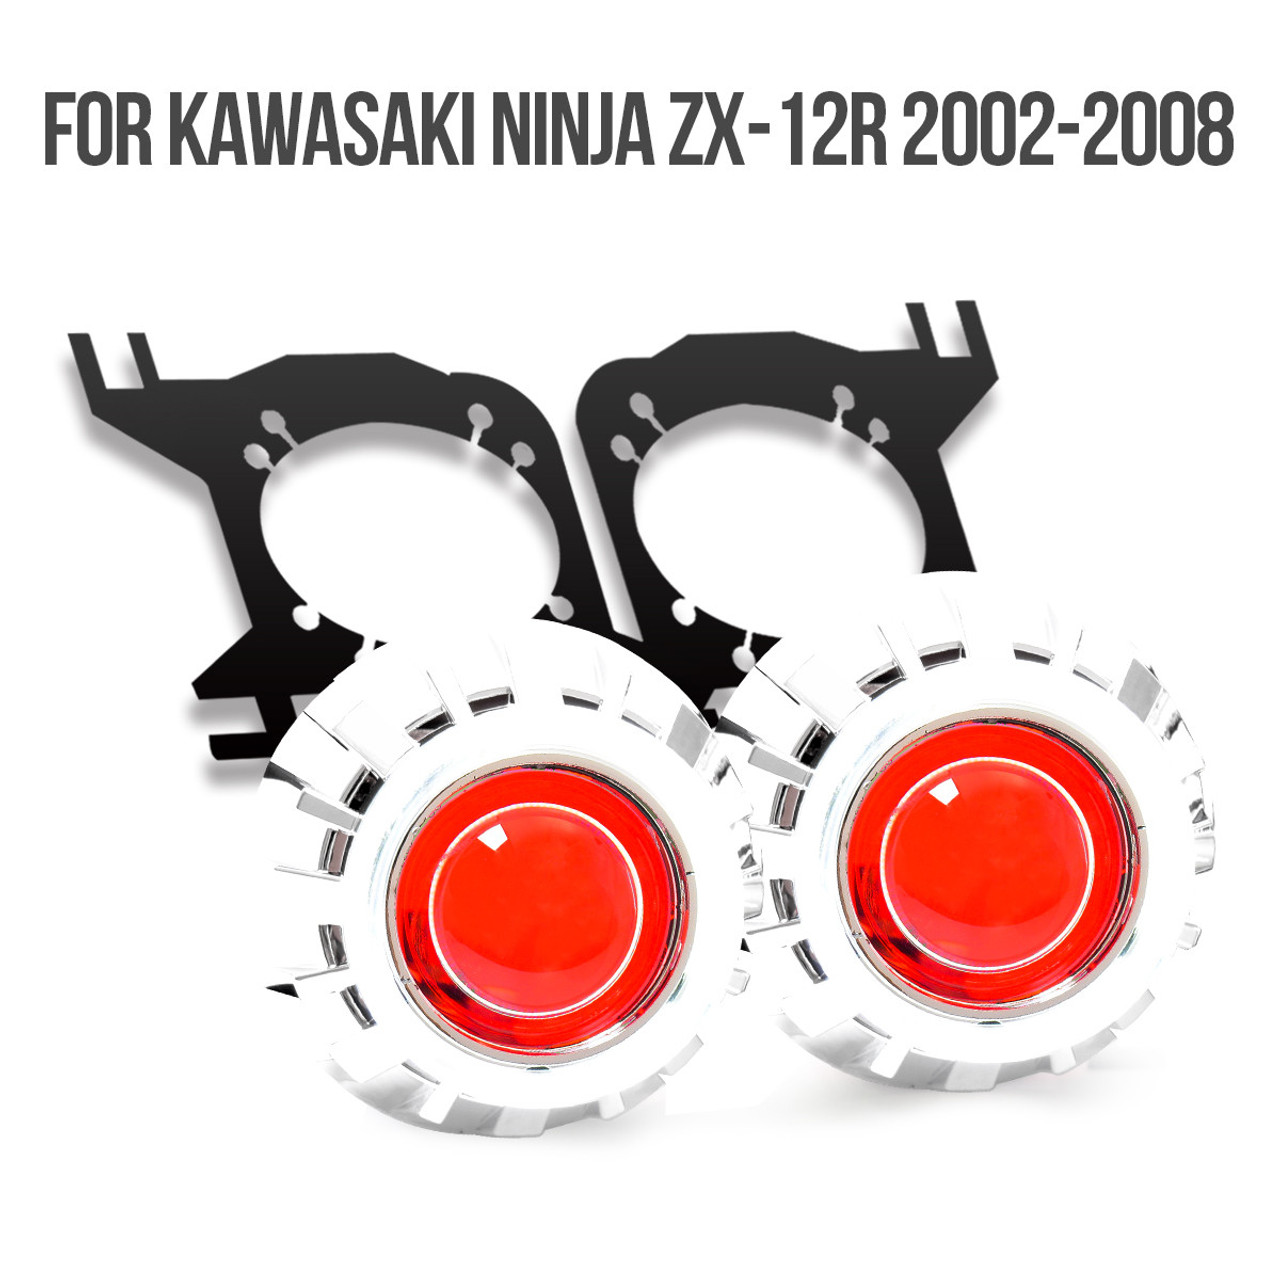 hight resolution of 2002 2003 2004 2005 2006 2007 2008 kawasaki ninja zx12r projector kit